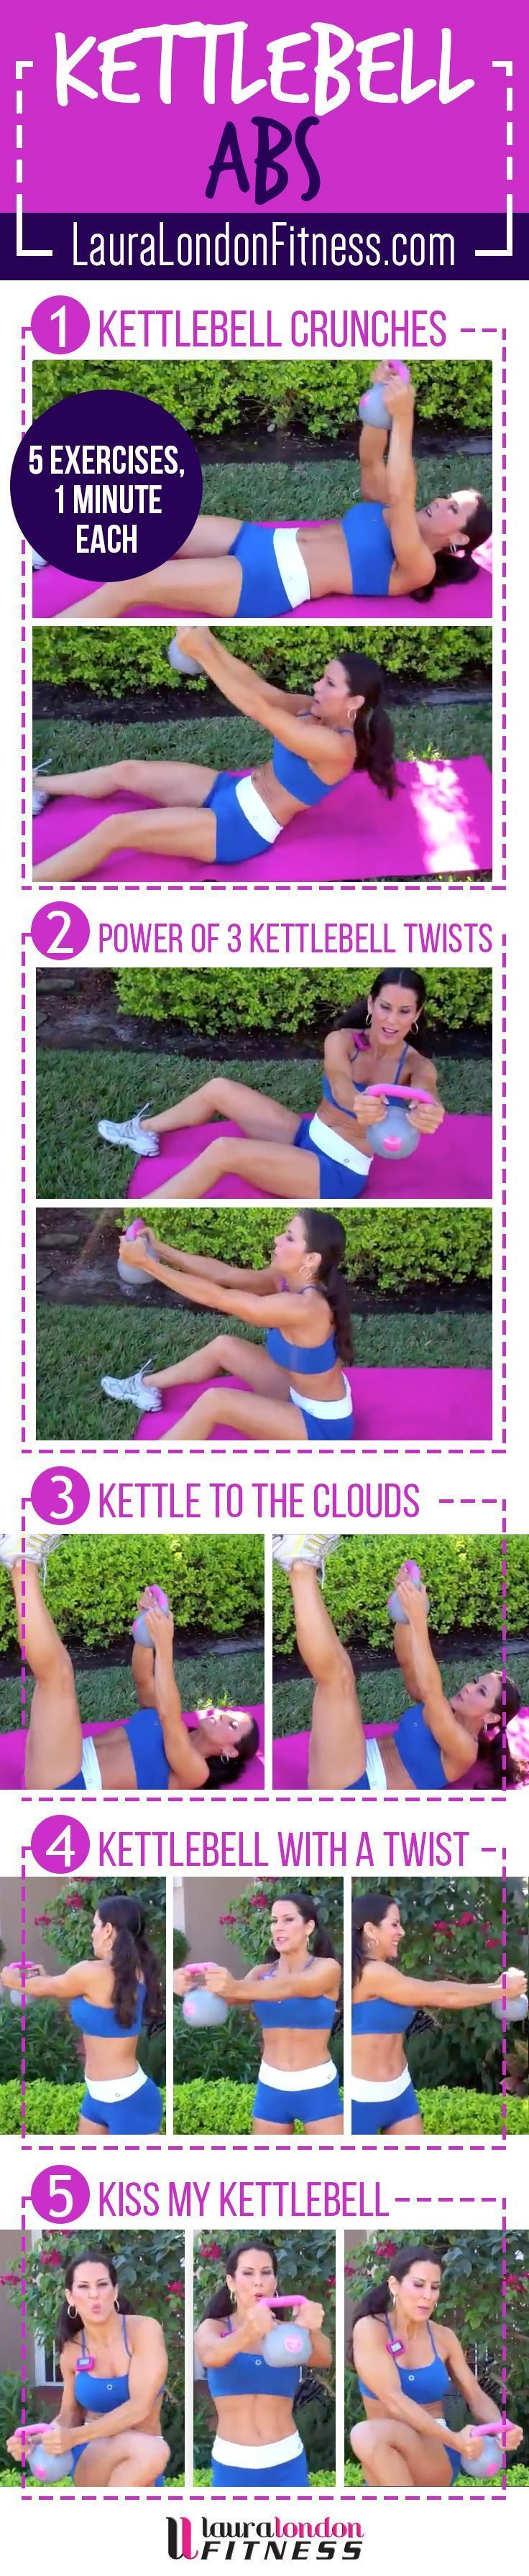 kettle bell for Xmas can't wait to try these moves with it!